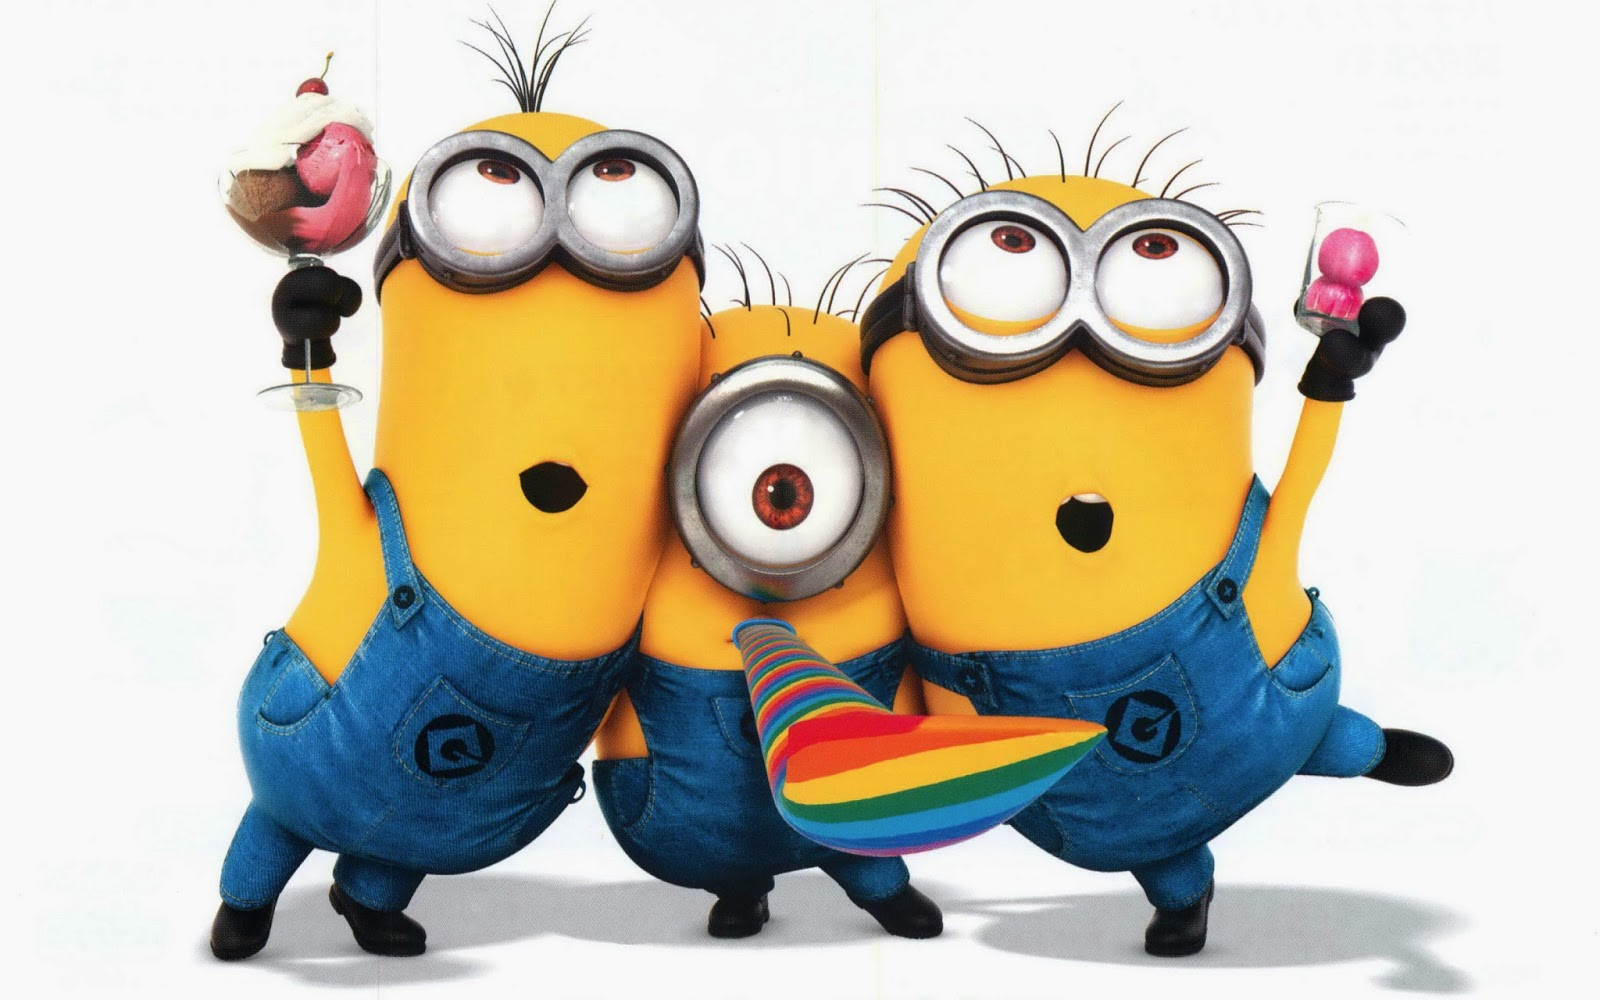 http://gallerycartoon.blogspot.com/2015/03/minions-movie-pictures-2.html